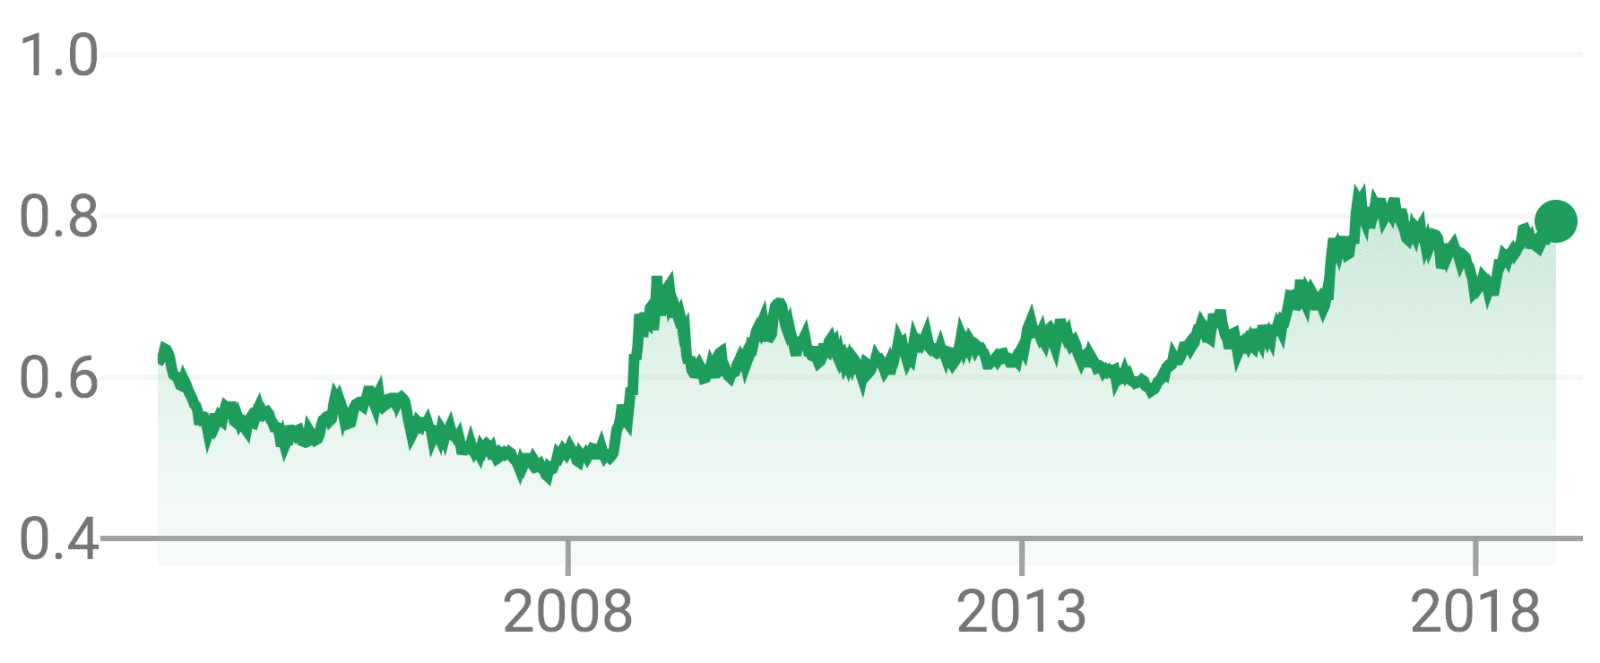 USD/GBP exchange rates since 2007